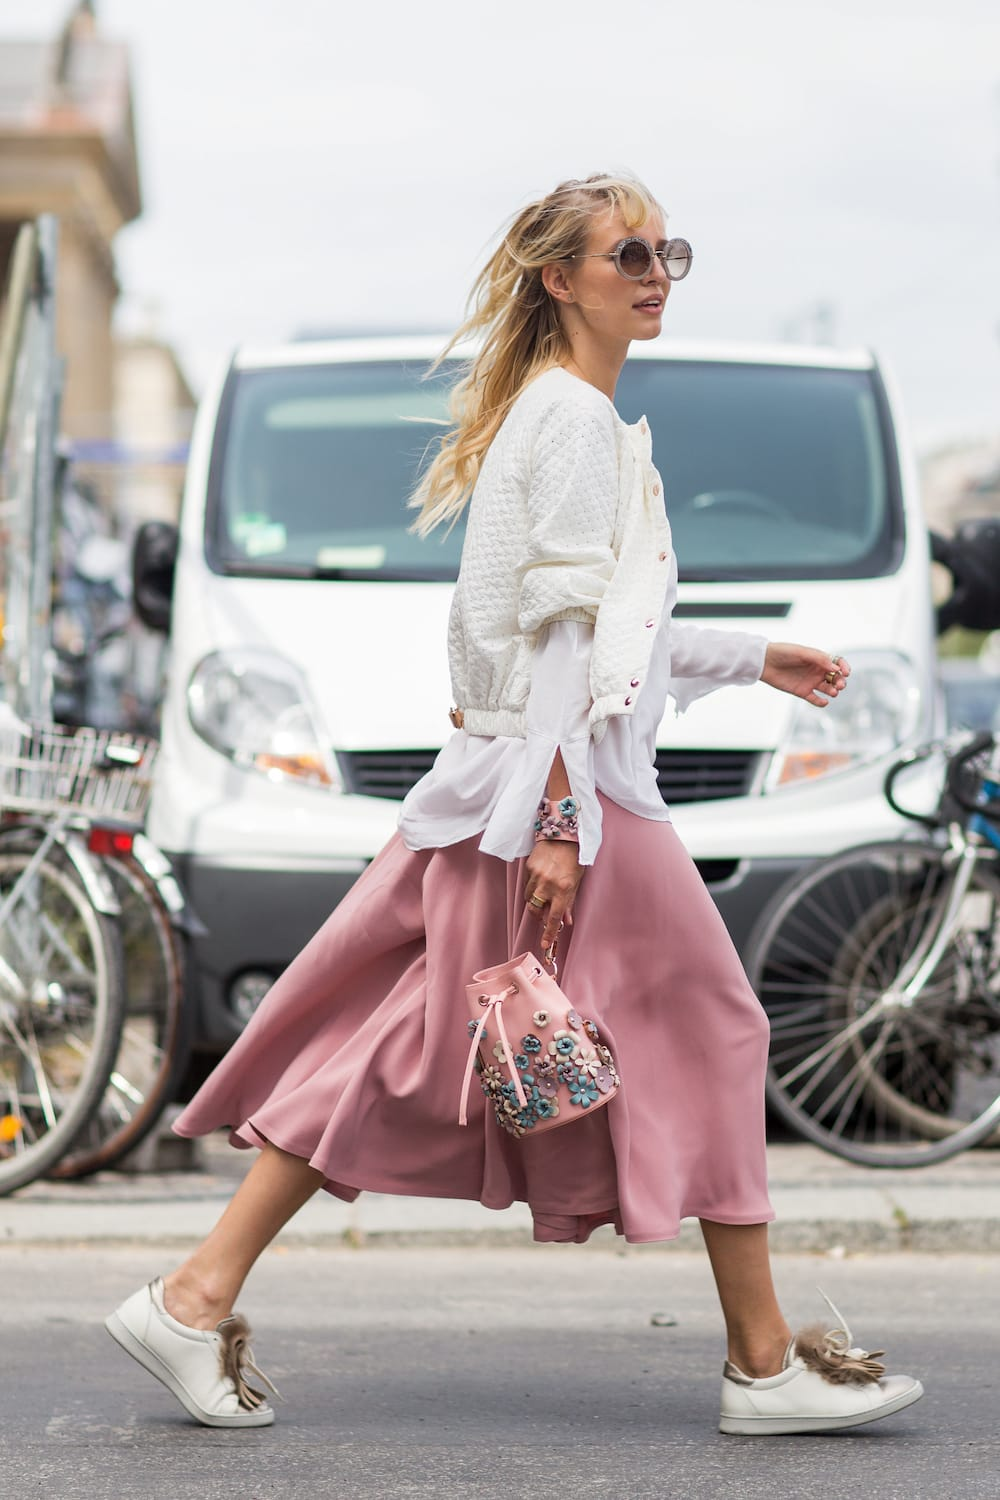 What Street Style Looks Like Around the World